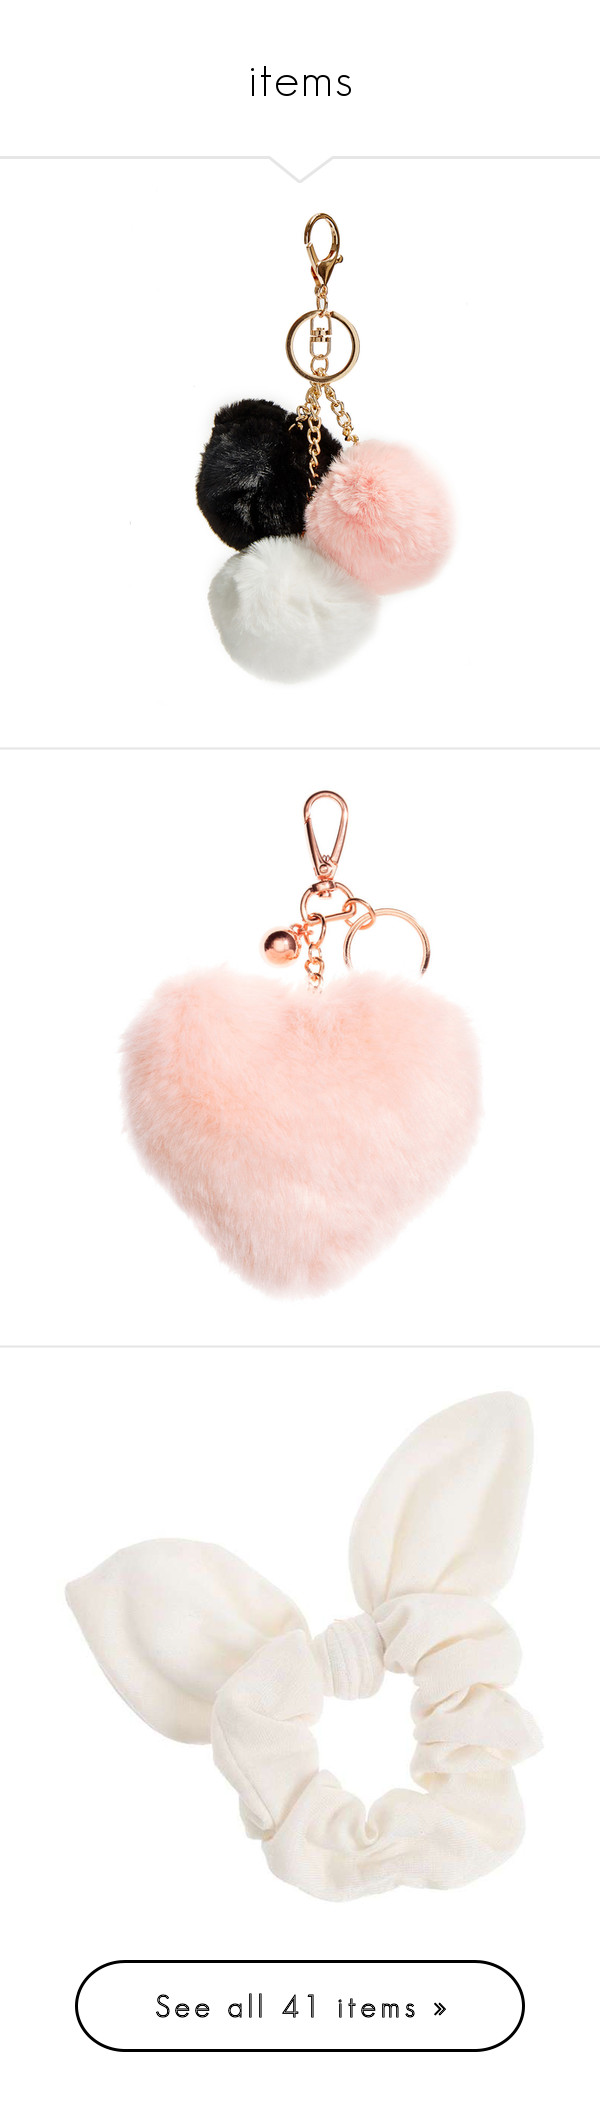 """items"" by annacc ❤ liked on Polyvore featuring accessories, keychains, other, key chains, items, fob key chain, key chain, pom pom key chain, heart key ring and hair accessories"